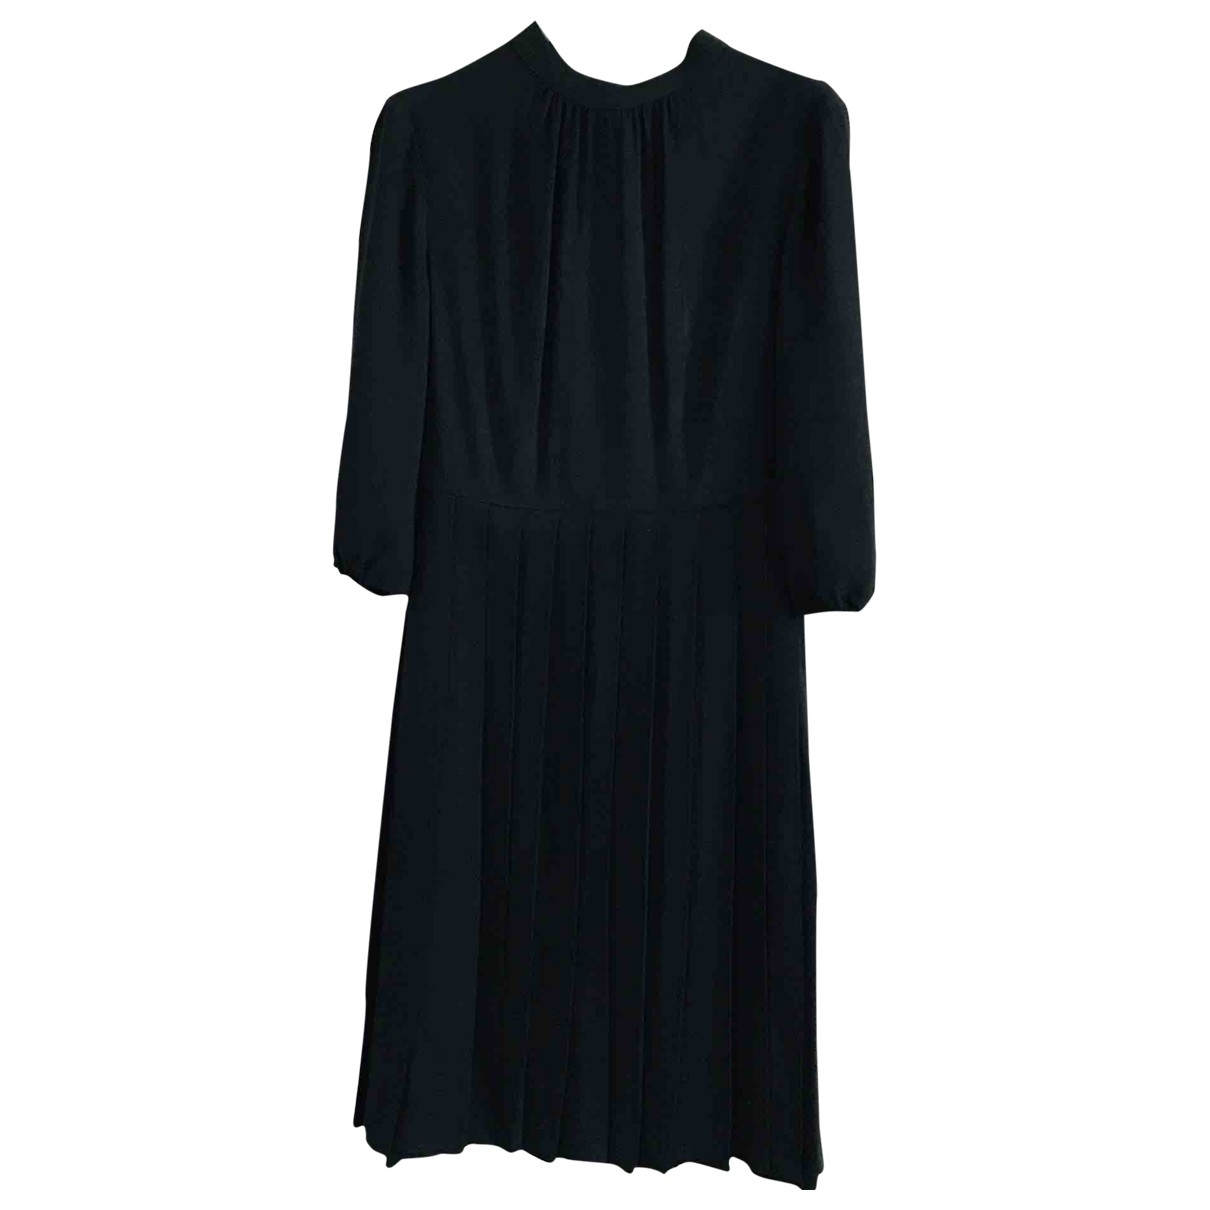 Prada \N Black dress for Women 42 IT